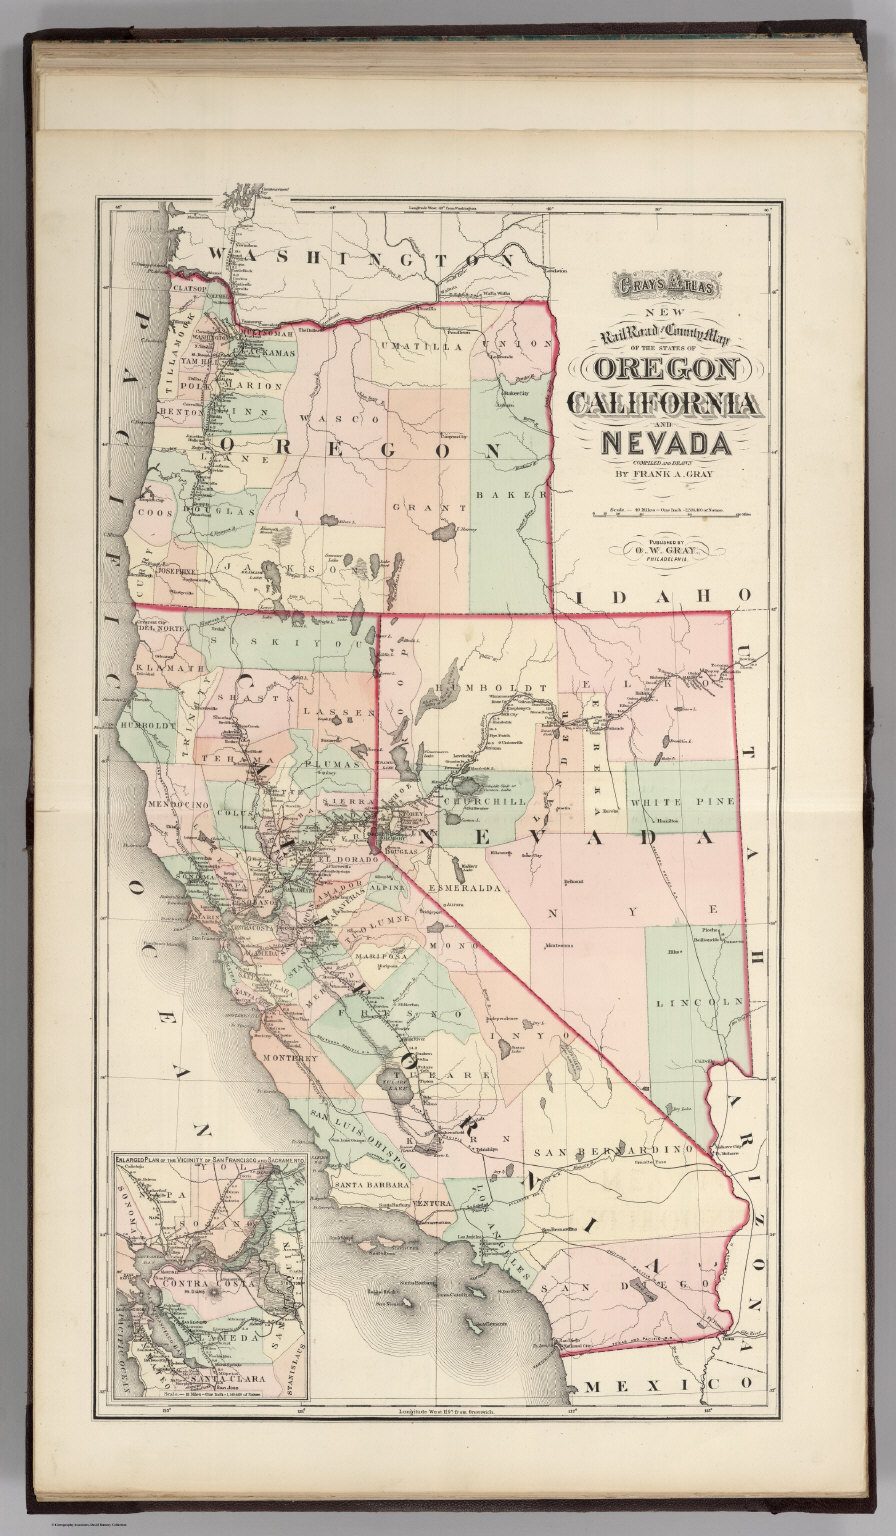 Railroad map of Oregon, California, and Nevada. - David Rumsey ... on nevada military map, nevada transportation map, nevada map with latitude and longitude, nevada speed limit map, nevada farms, nevada gold maps, carlin trend nevada map, nevada largest cities, nevada transmission line map, nevada rivers, nevada lakes map, freight train routes california map, nevada road map, u.s. geothermal map, eagle valley nevada map, nevada utilities map, nevada reservoirs, nevada abandoned railroads, nevada on map, nevada gis geologic maps,